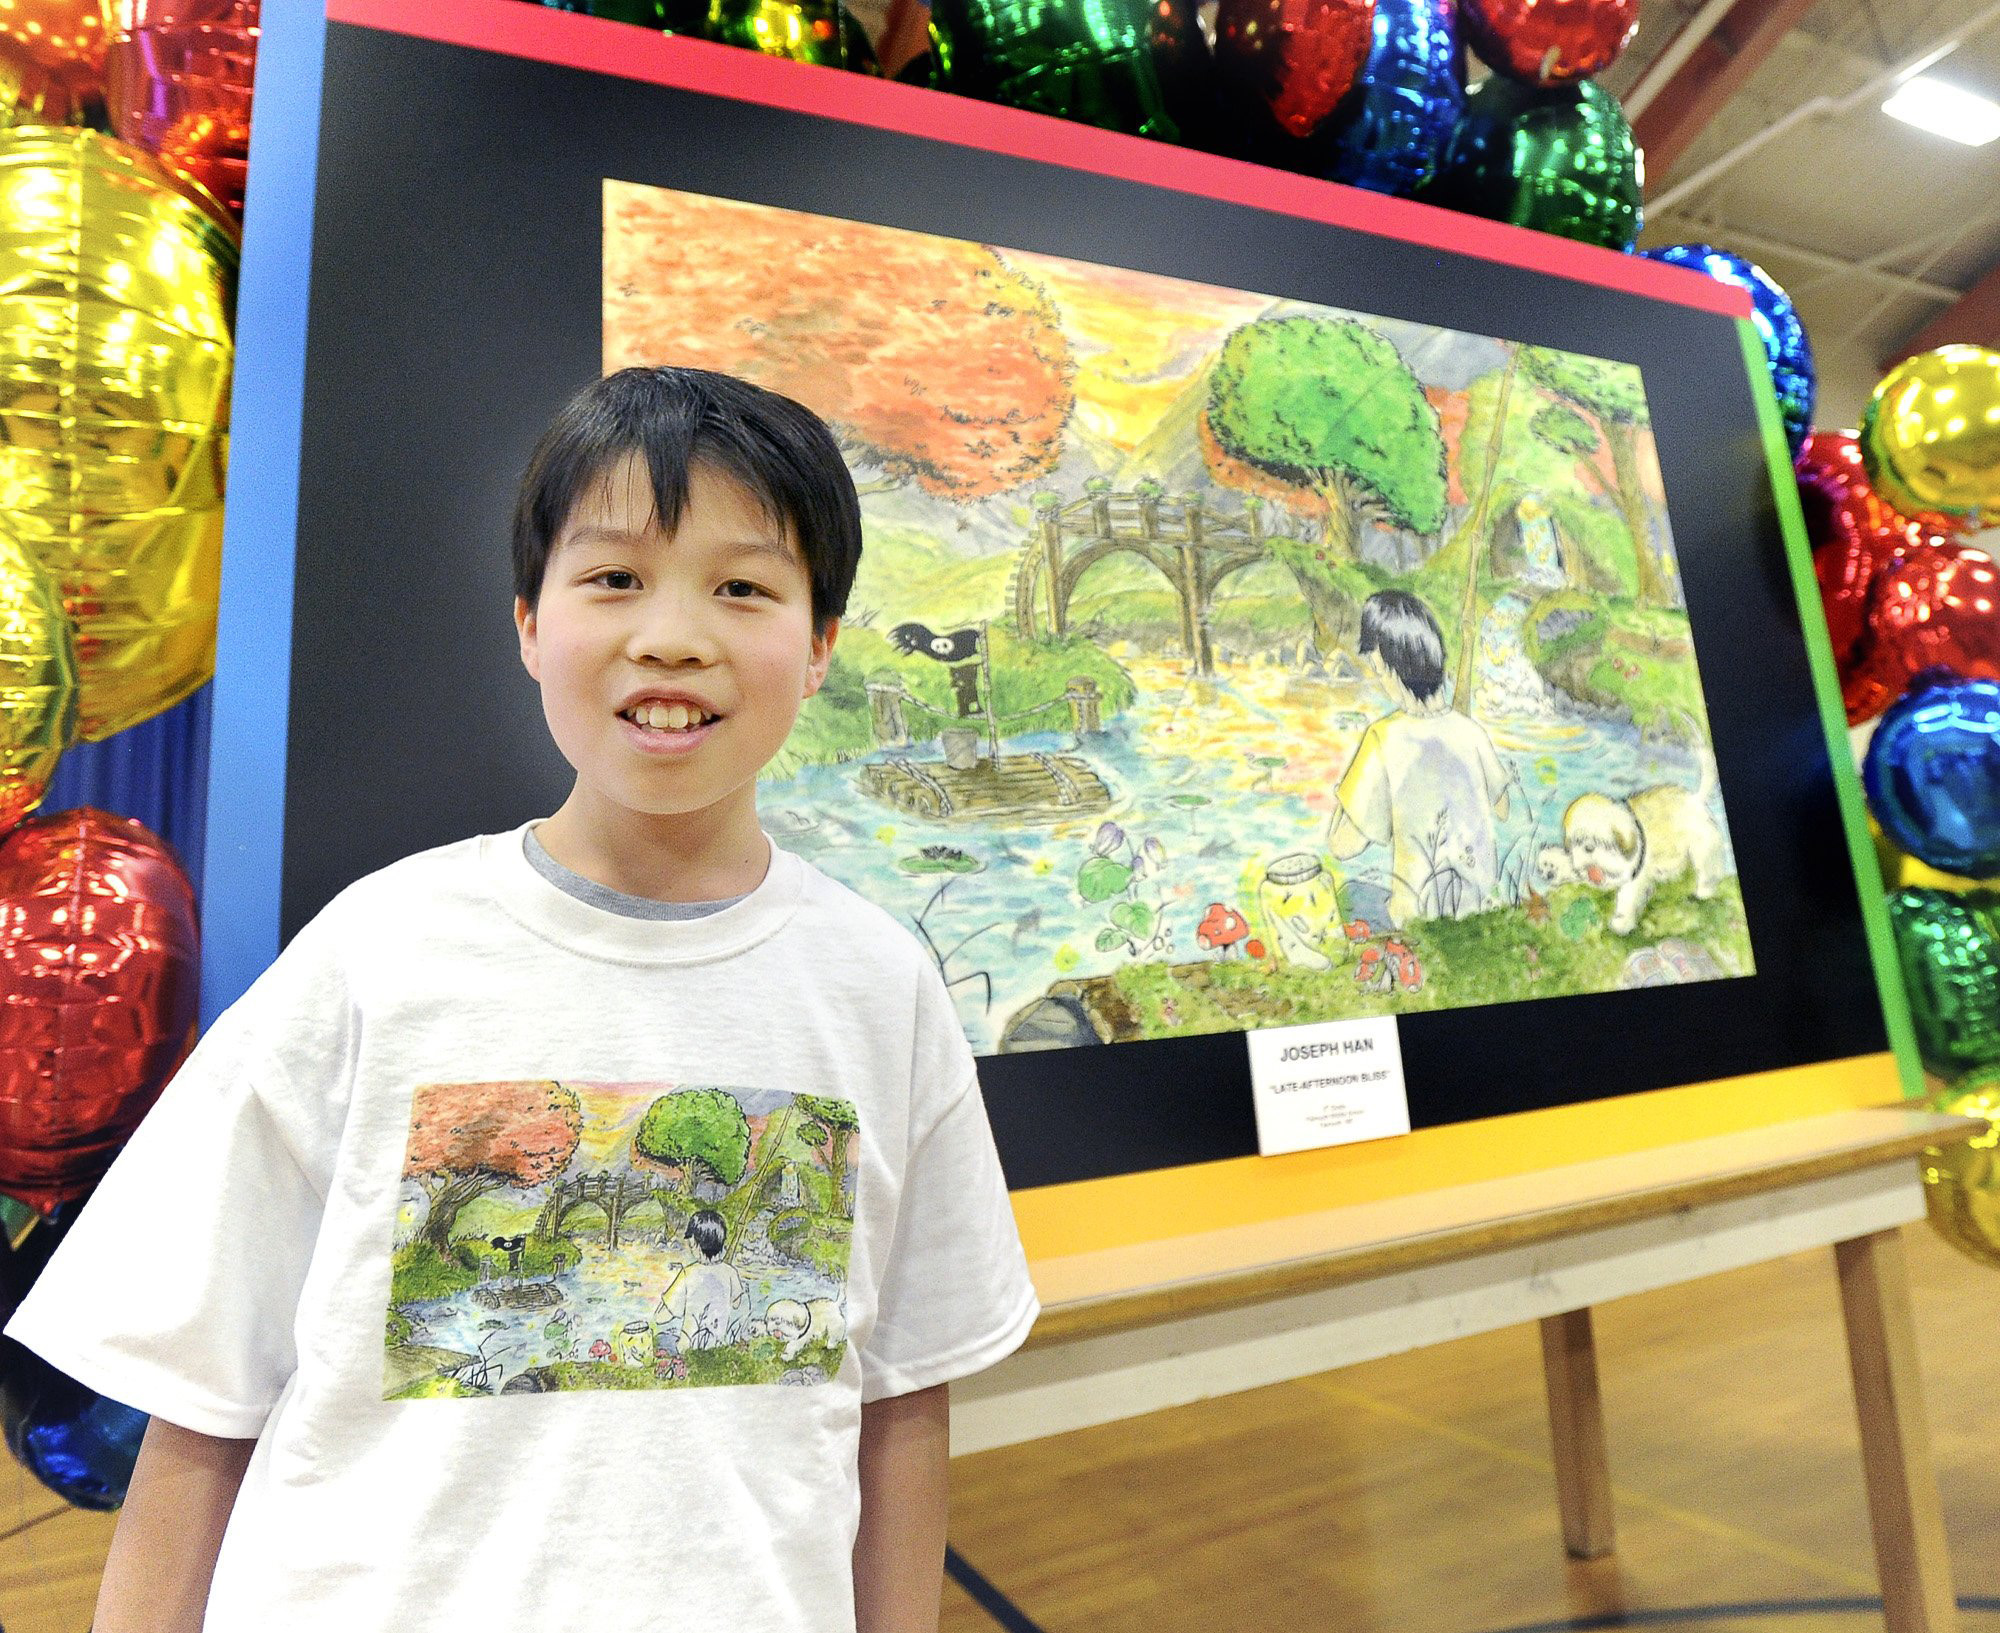 14 year old Joey Han, a 8th grade student at Falmouth Middle School, was honored as a finalist in a national contest to create the best  Doodle for Google  in Maine.  (Photo by John Patriquin/Portland Press Herald via Getty Images)